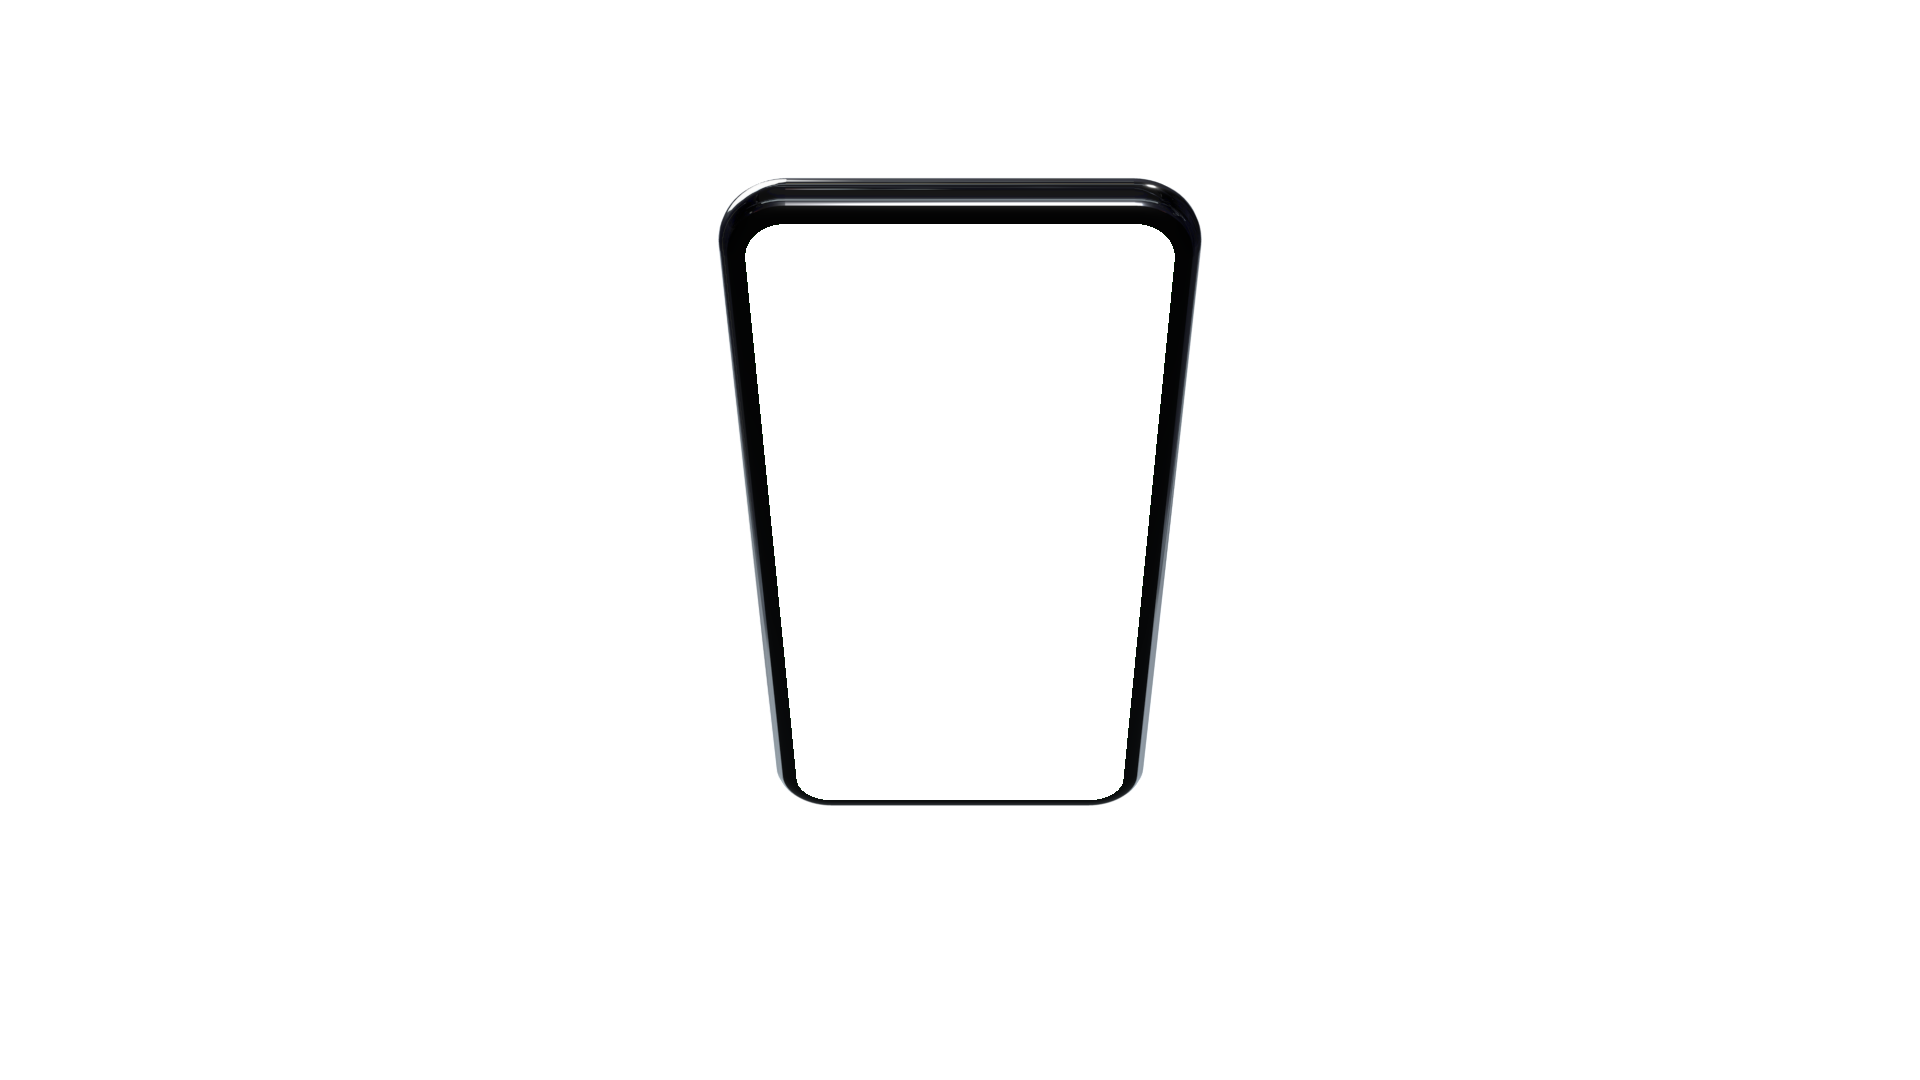 Generic Phone PNG seen from the top